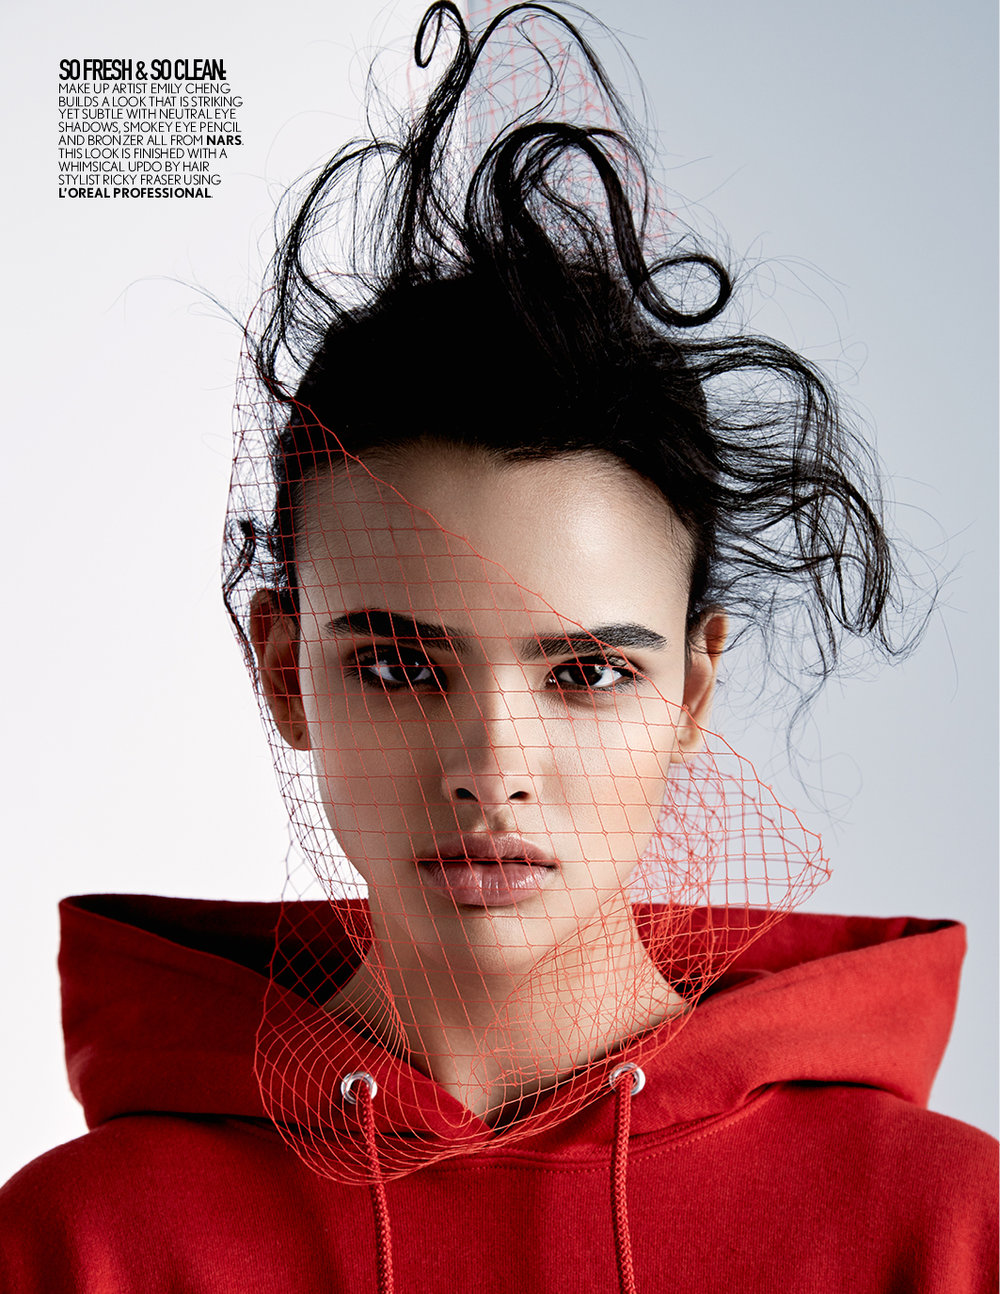 RUNWAY BEAUTY EDITORIALb4.jpg